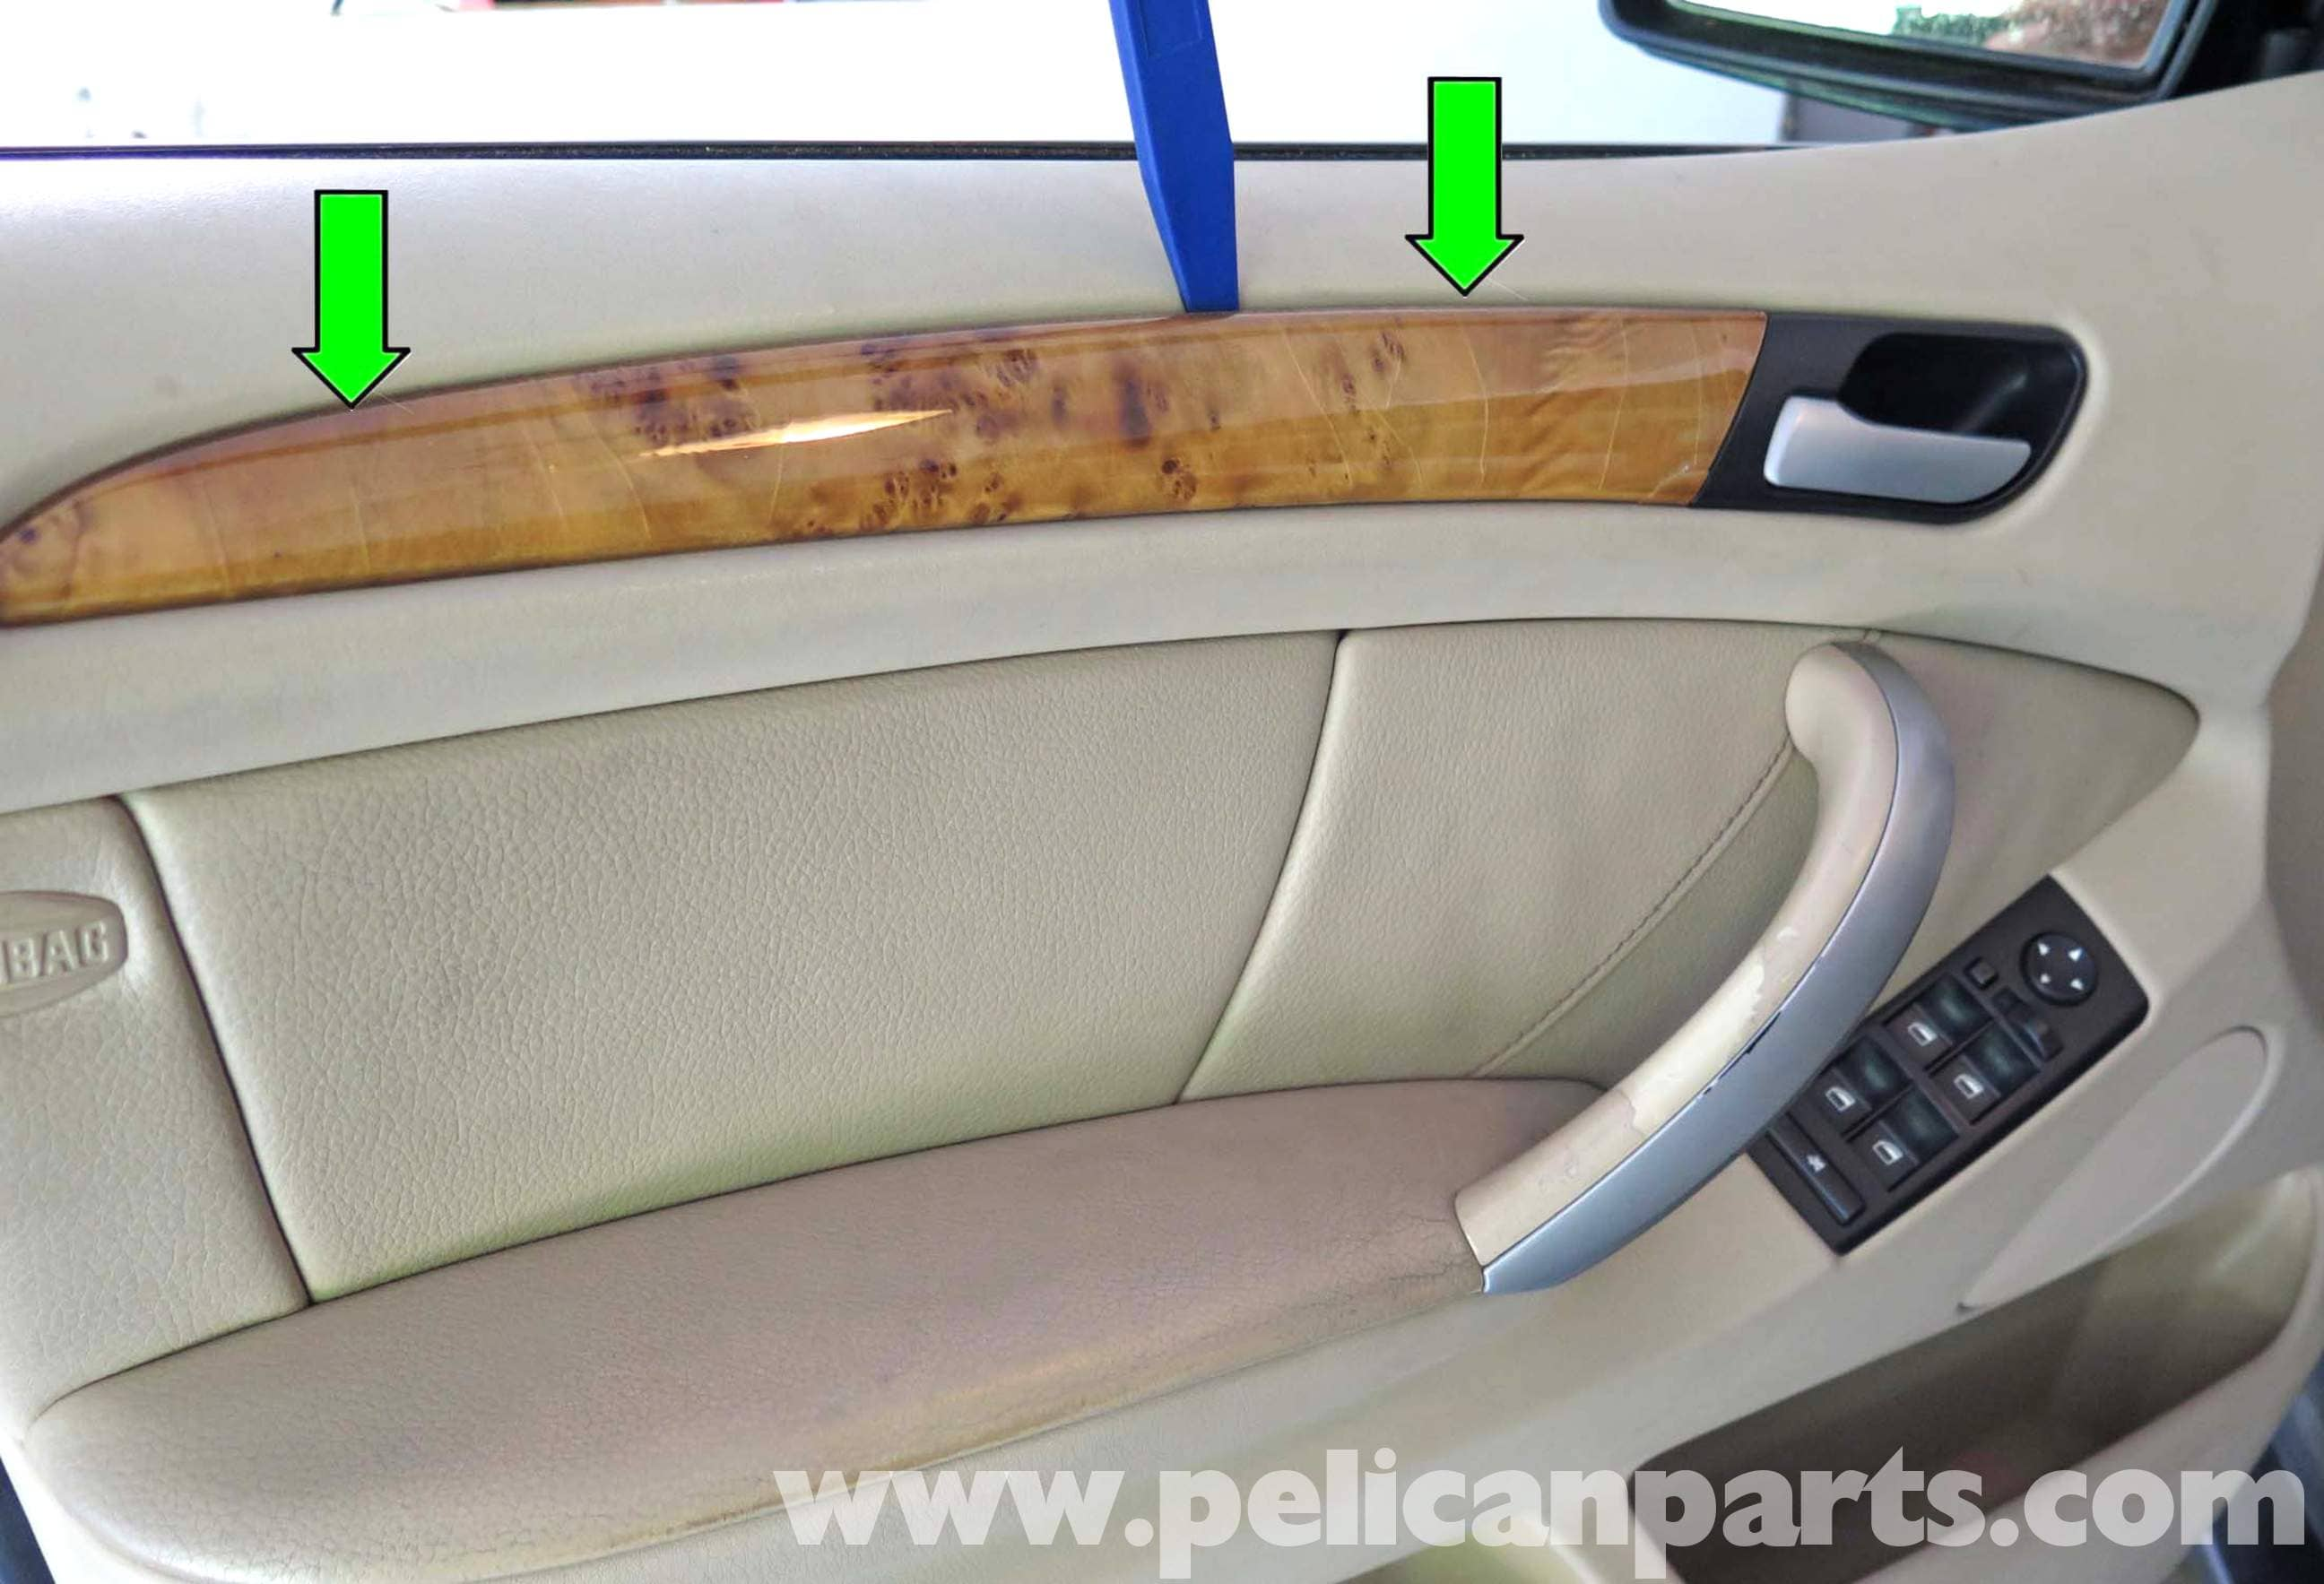 BMW X5 Door Panel Replacement | E53 (2000-2006) | Pelican Parts DIY ...